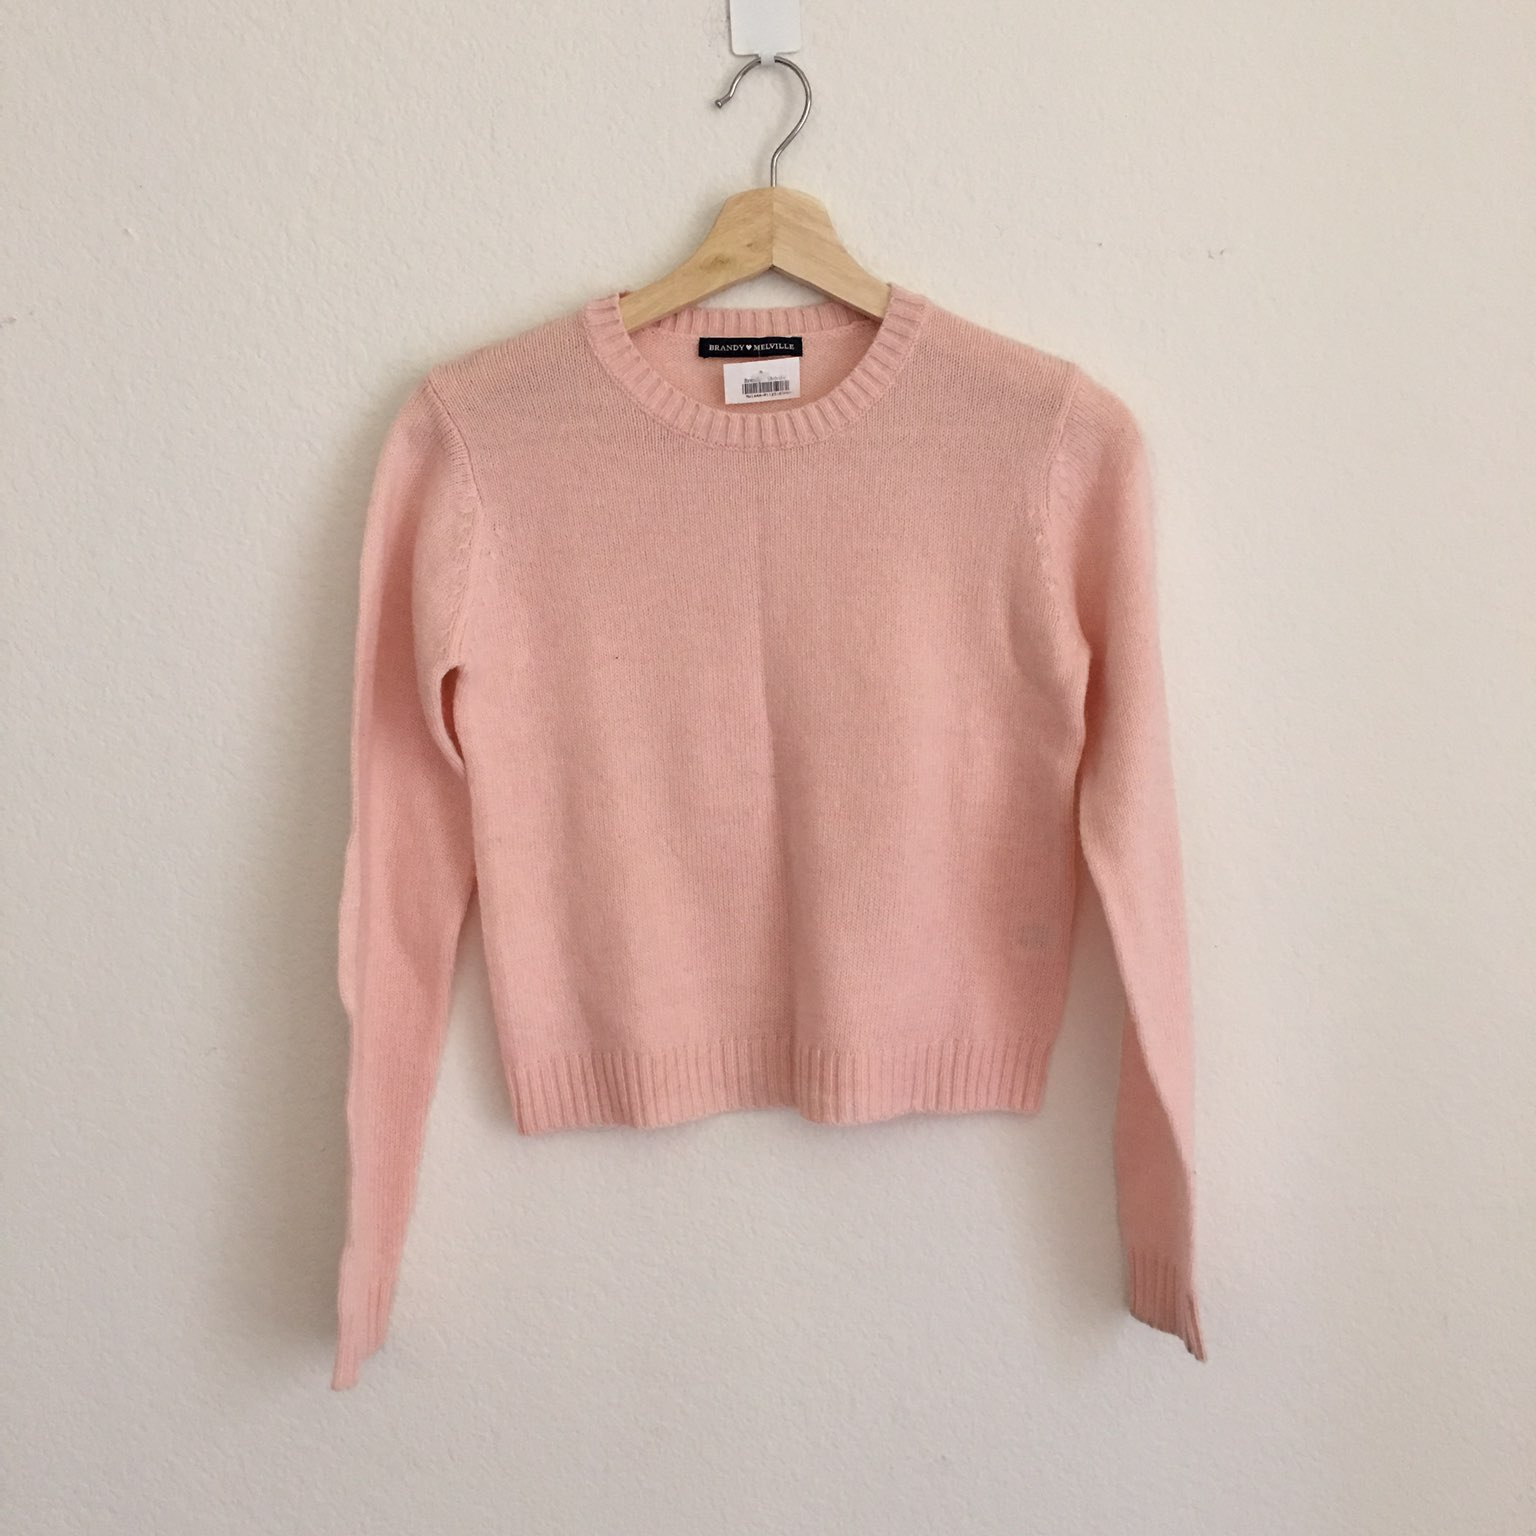 Brandy Melville Pink Sweater - Mercari: BUY & SELL THINGS YOU LOVE